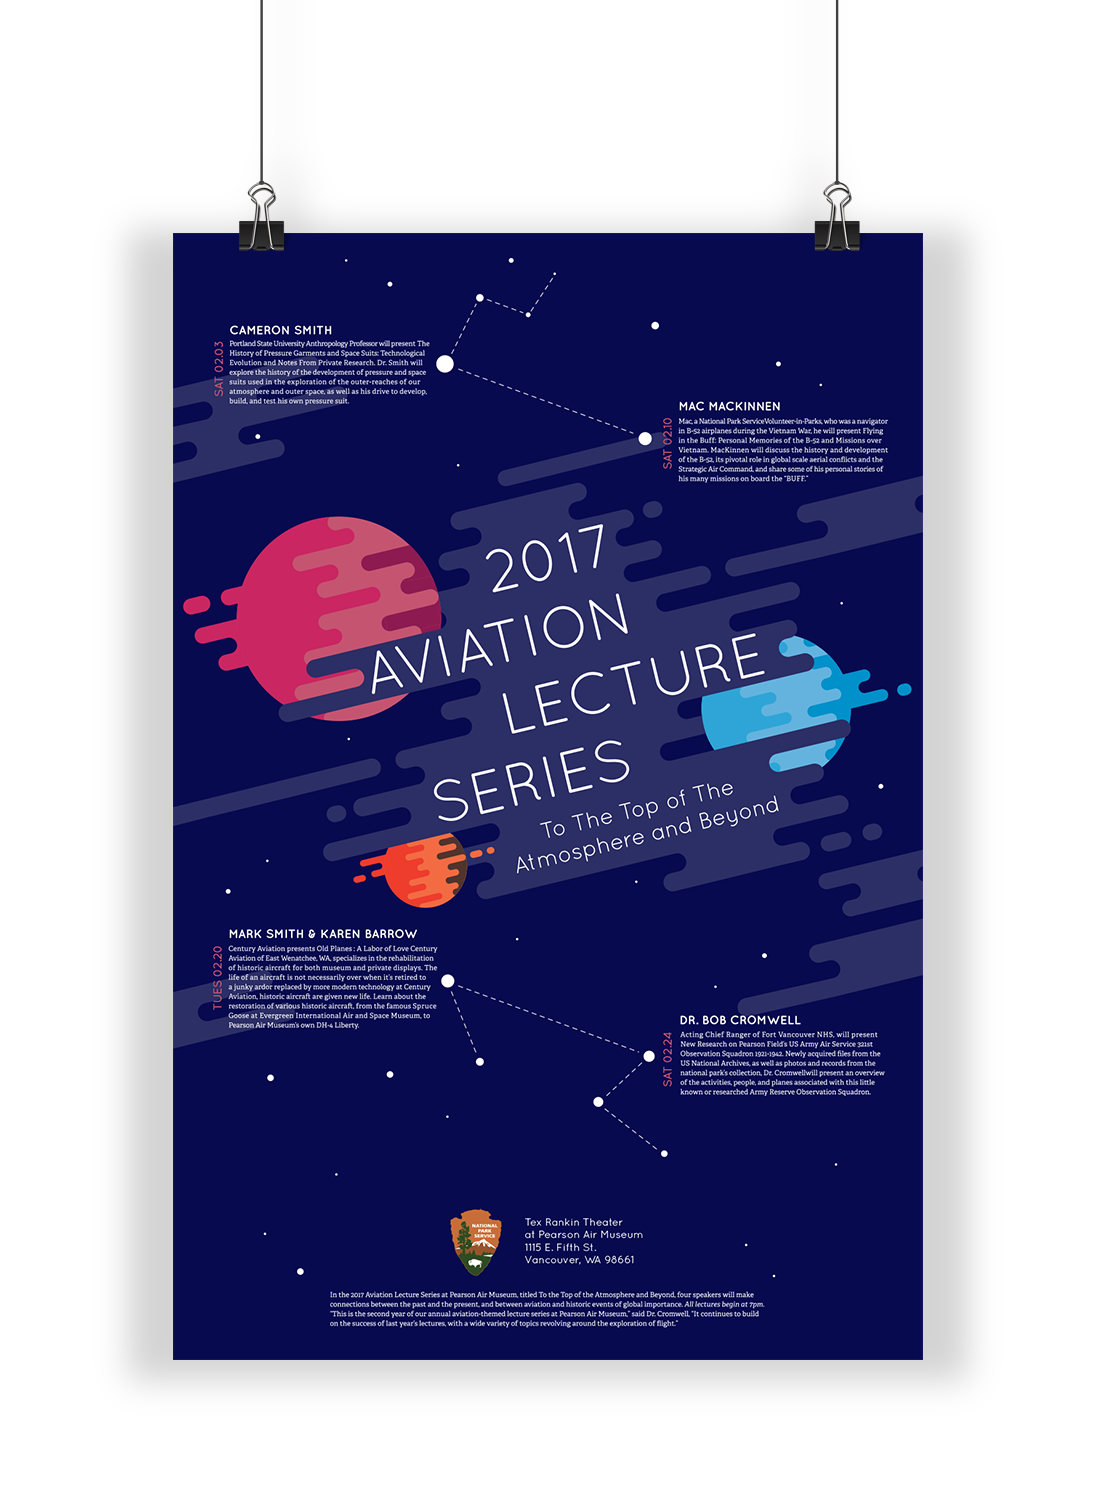 Aviation Lecture Series Poster on Behance